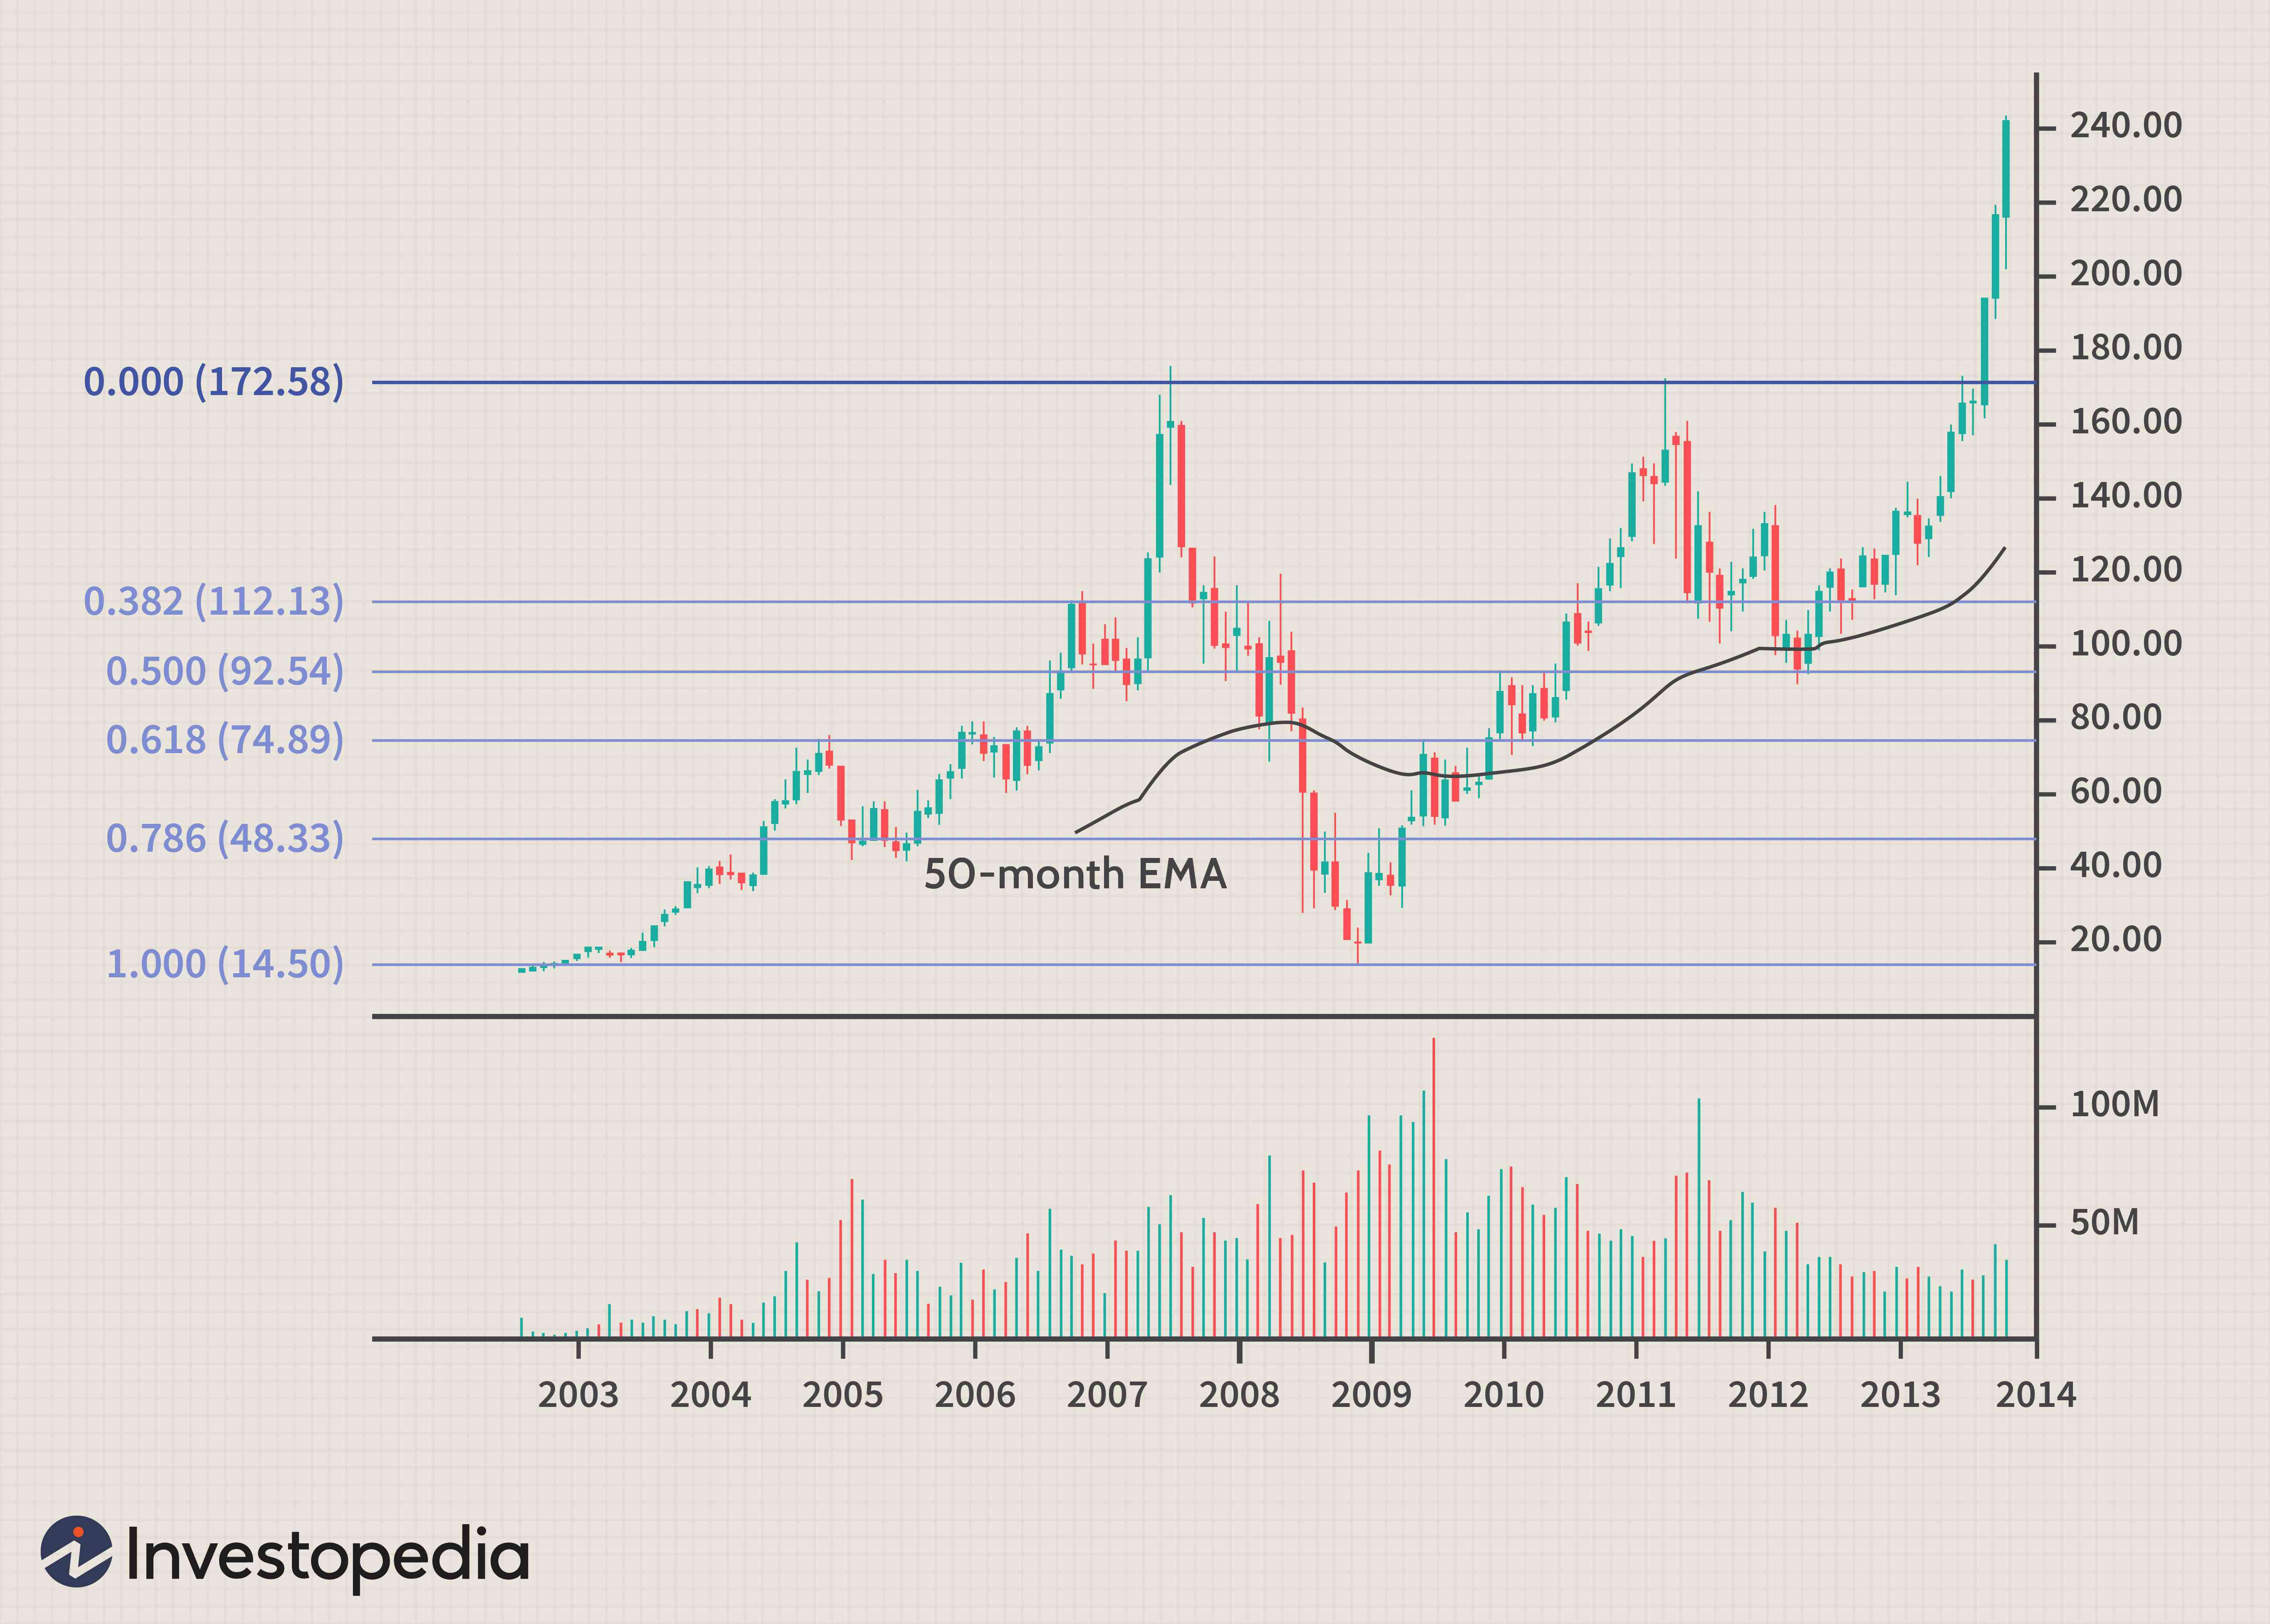 Technical analysis investopedia video on betting online cricket ipl betting odds